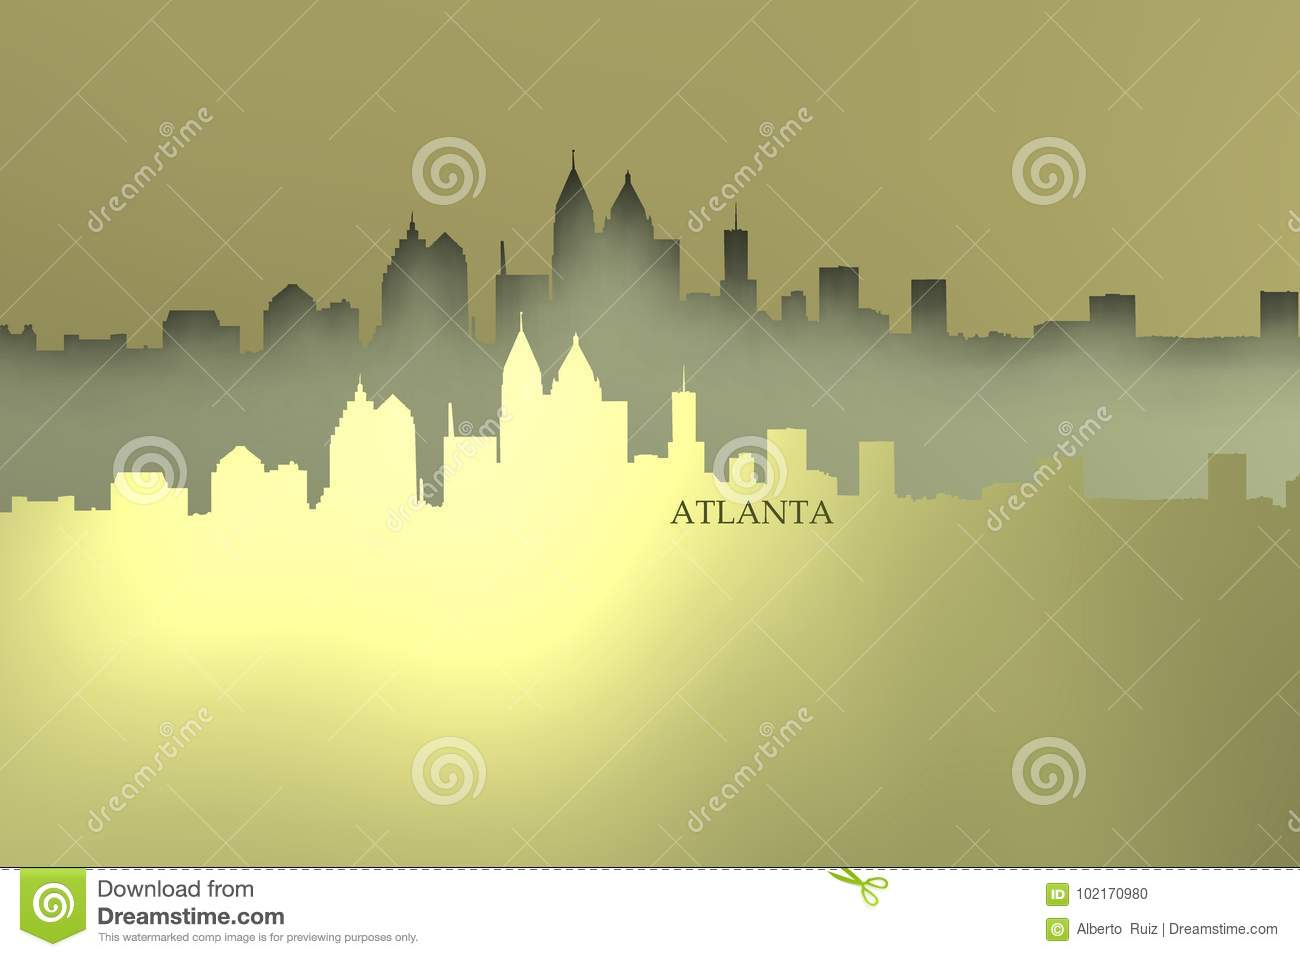 Sparkly Atlanta skyline.